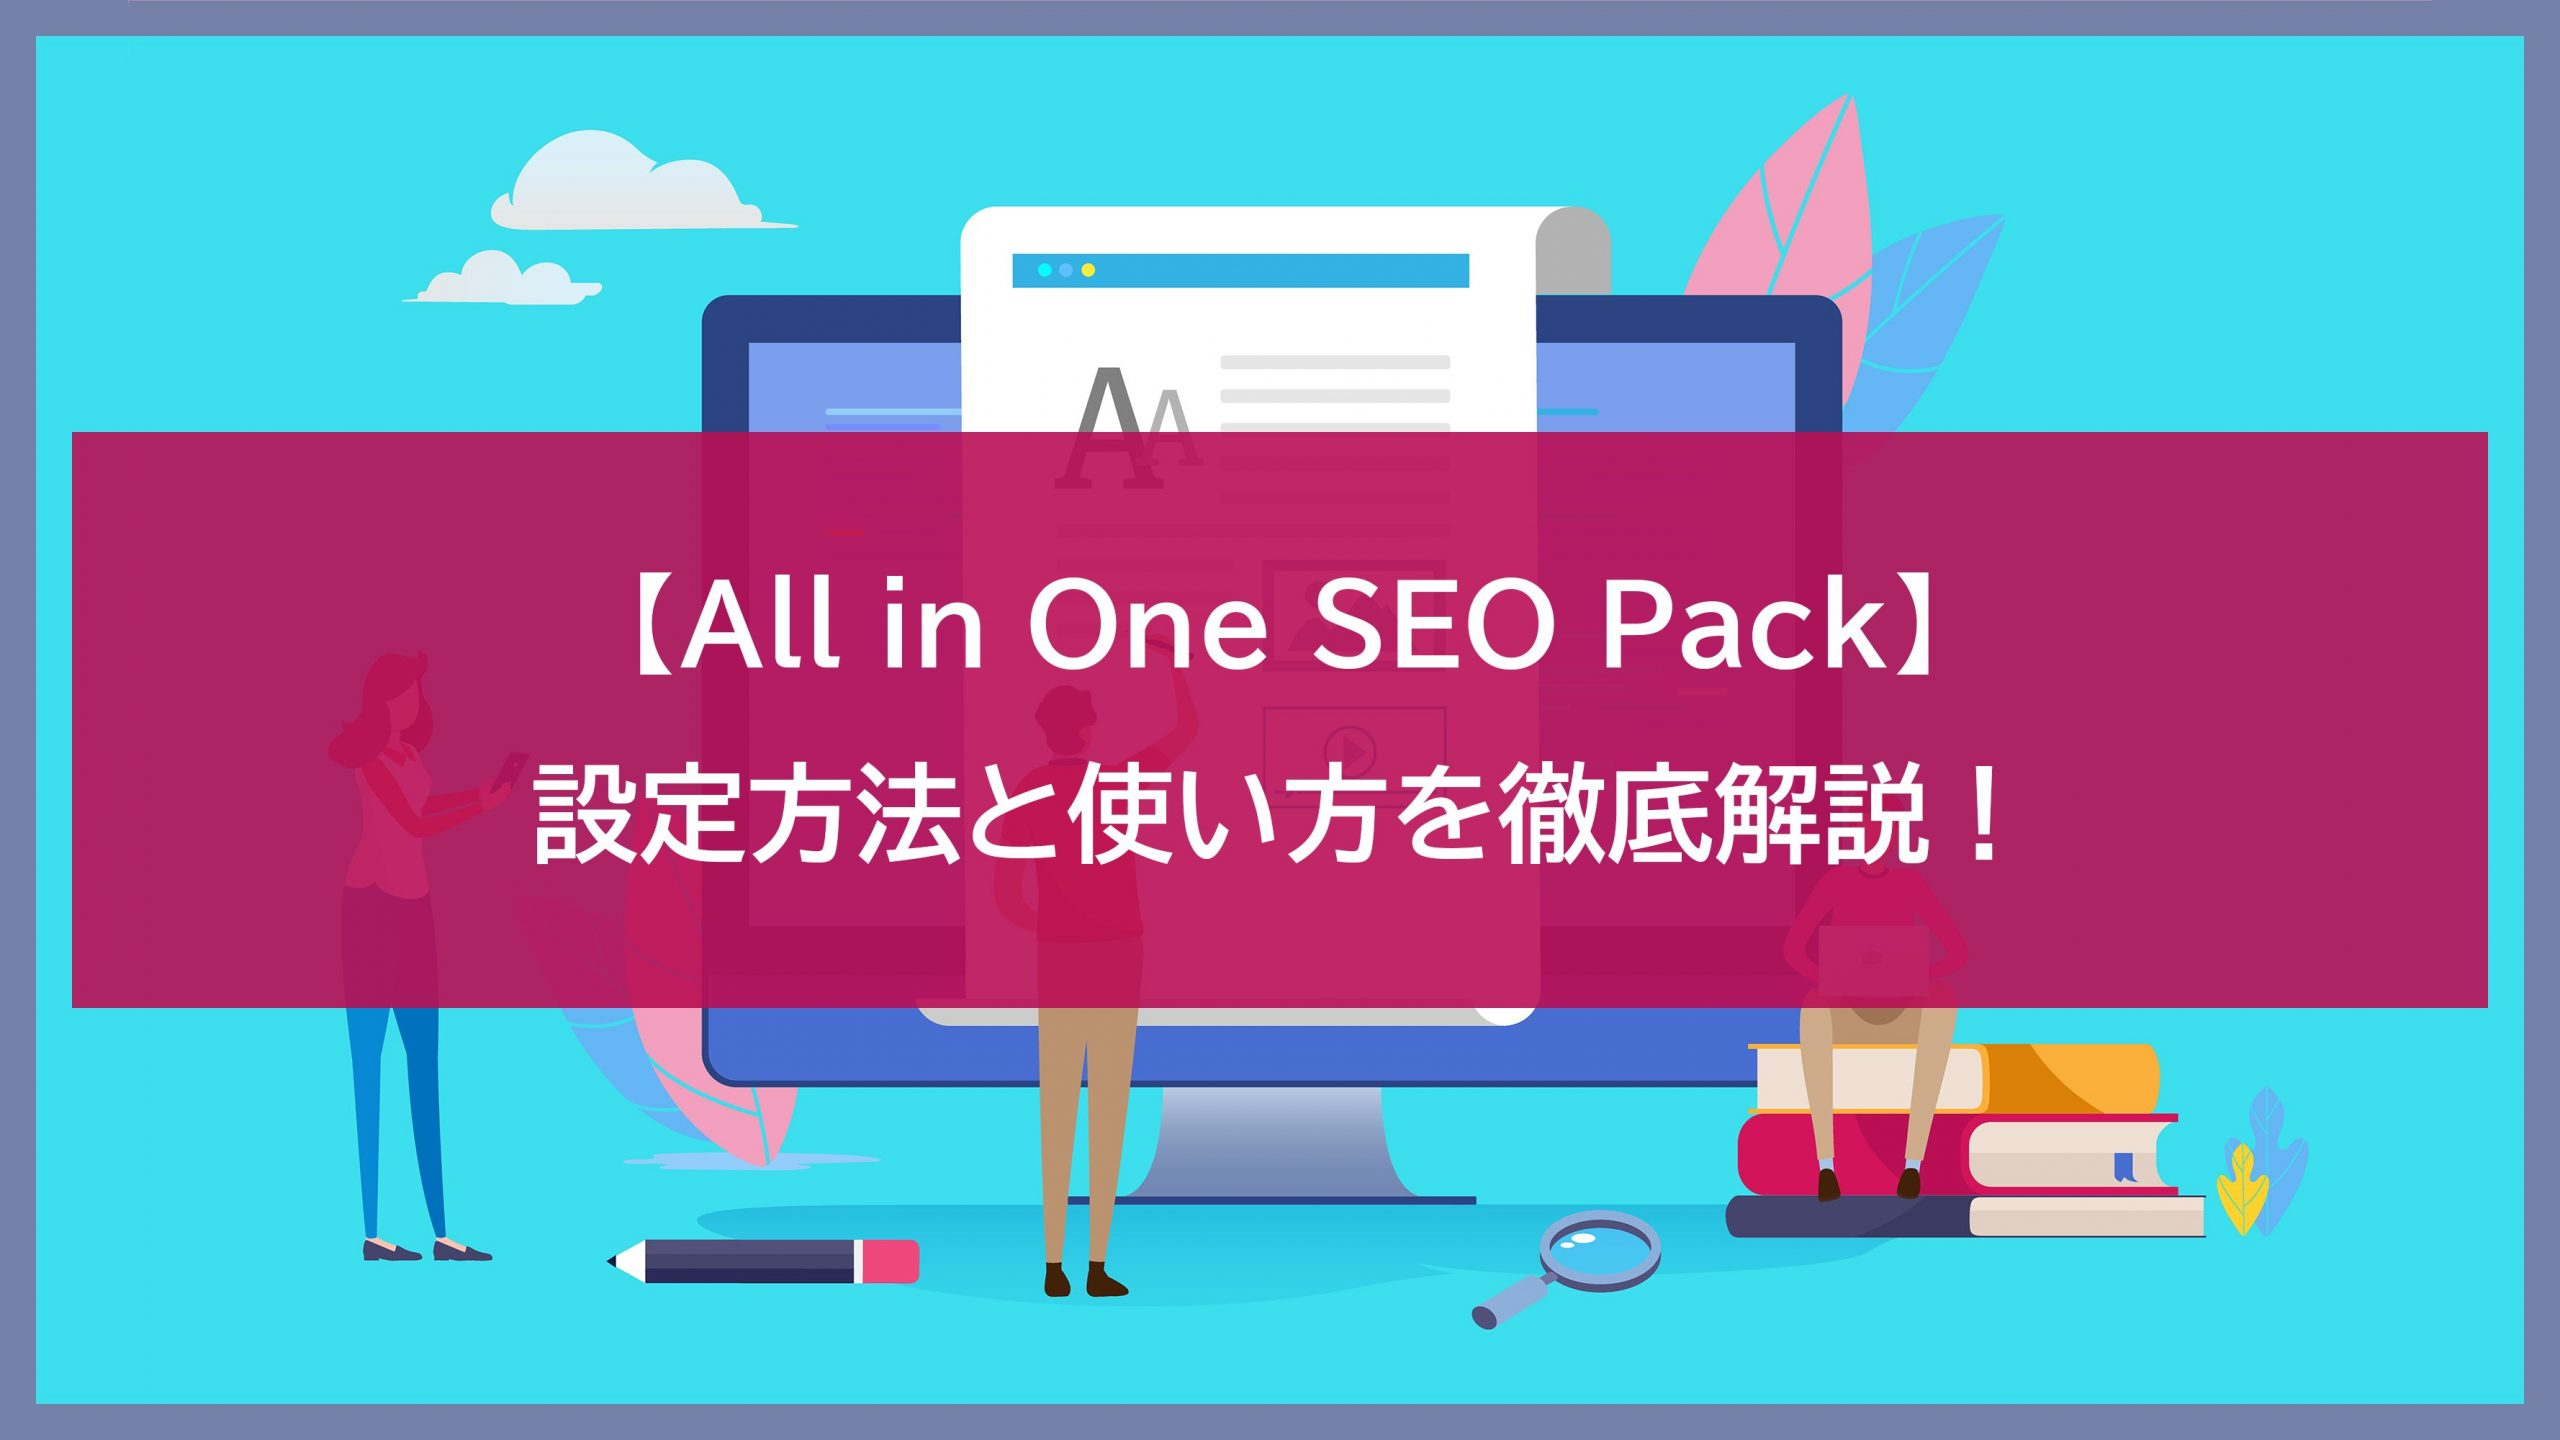 【All in One SEO Pack】設定方法と使い方を徹底解説!